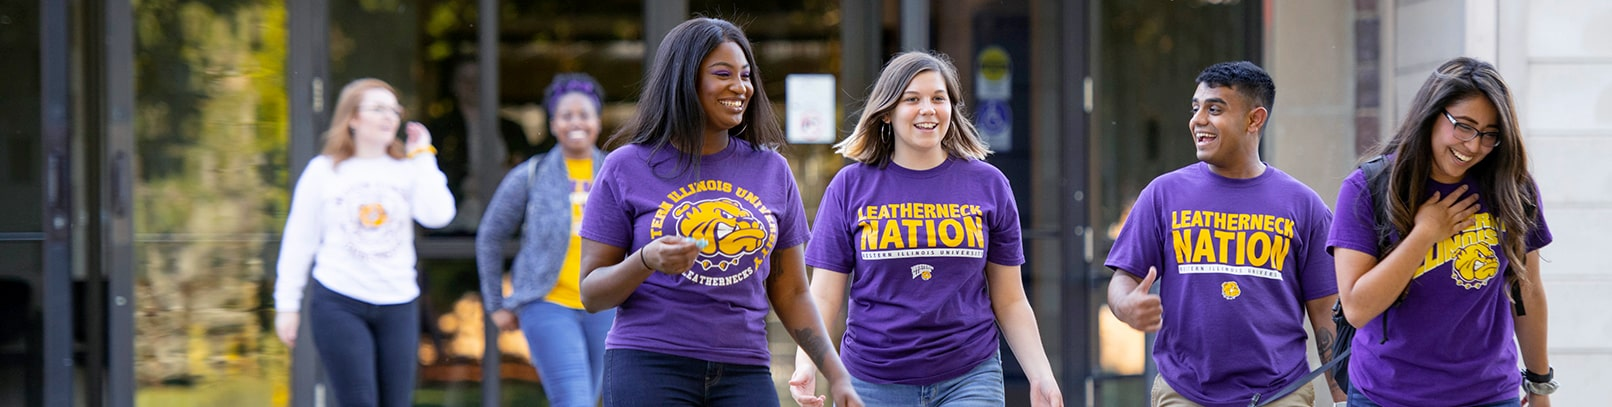 Students with purple and gold WIU t-shirts walking and laughing.